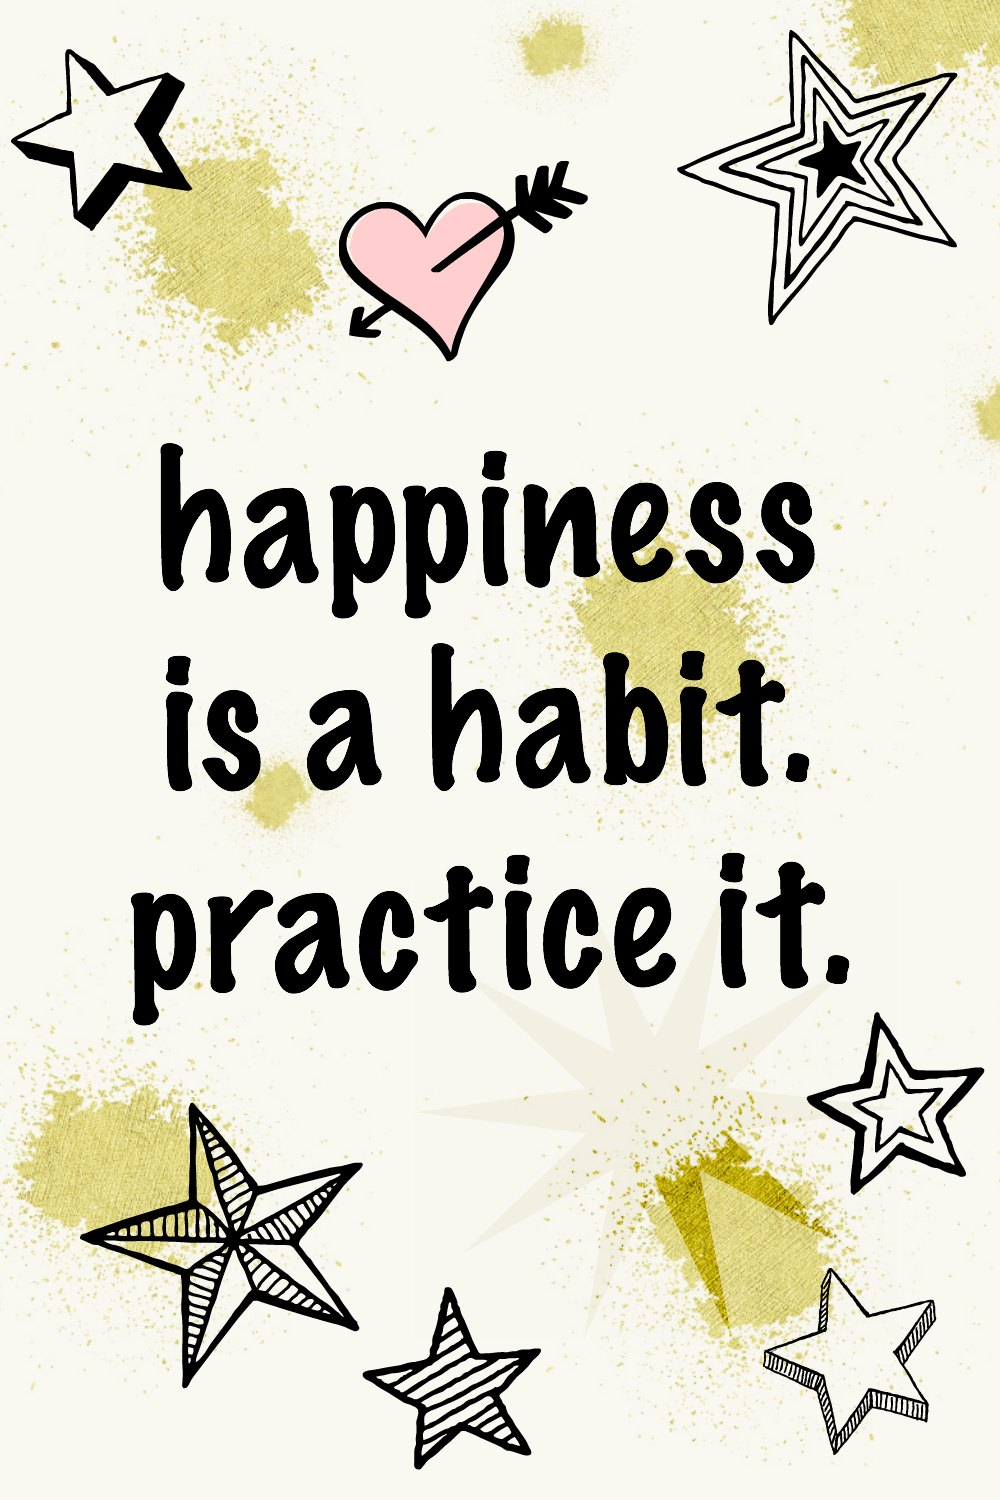 Happiness is a habit. Practice it. Happiness quotes #quotes #behappy #happiness